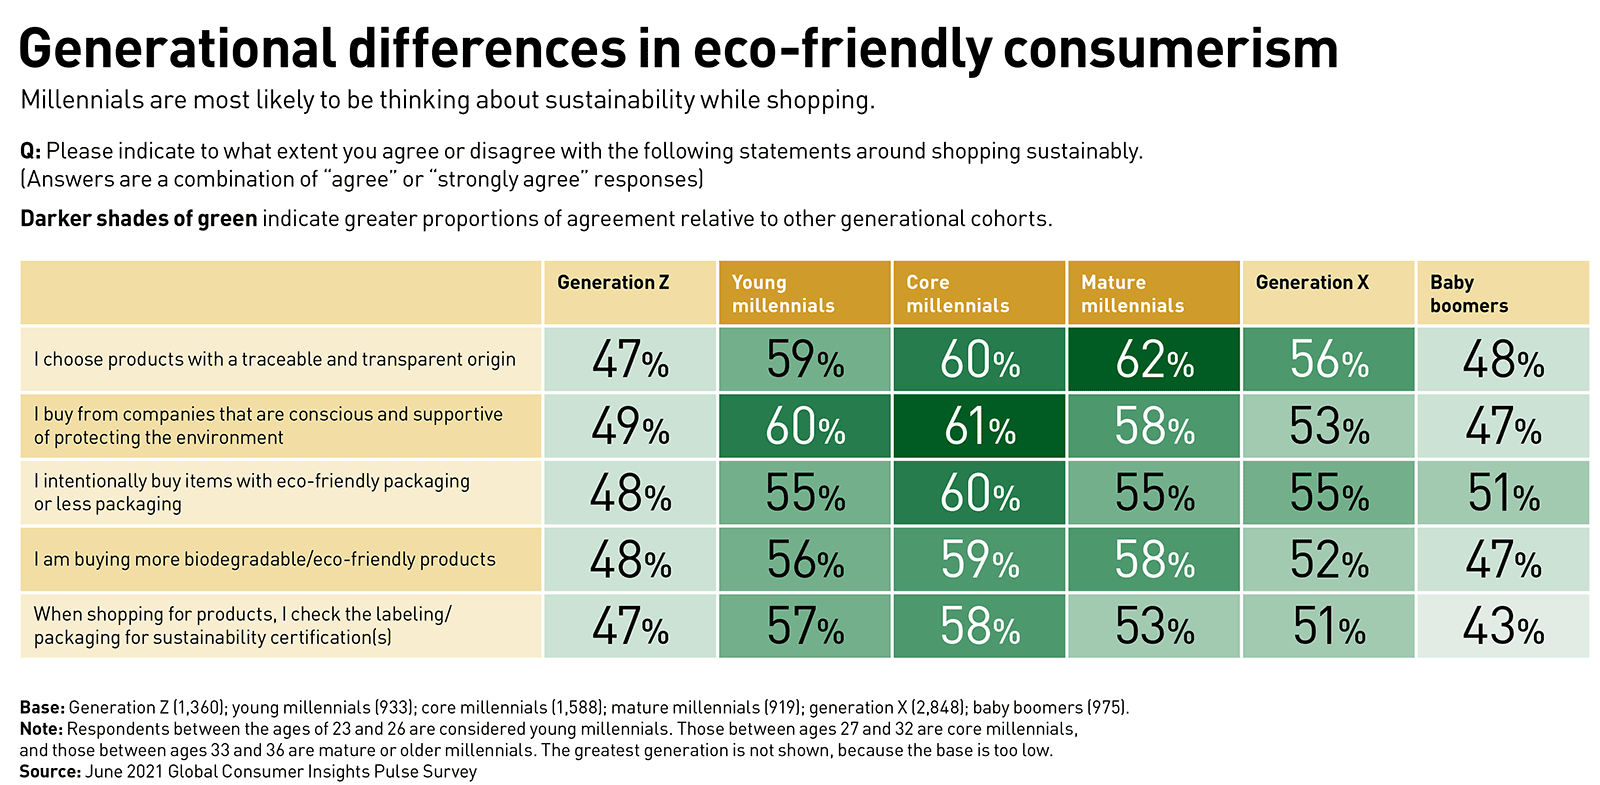 A chart showing generational differences in eco-friendly consumerism. Millennials are most likely to be thinking about sustainability while shopping.